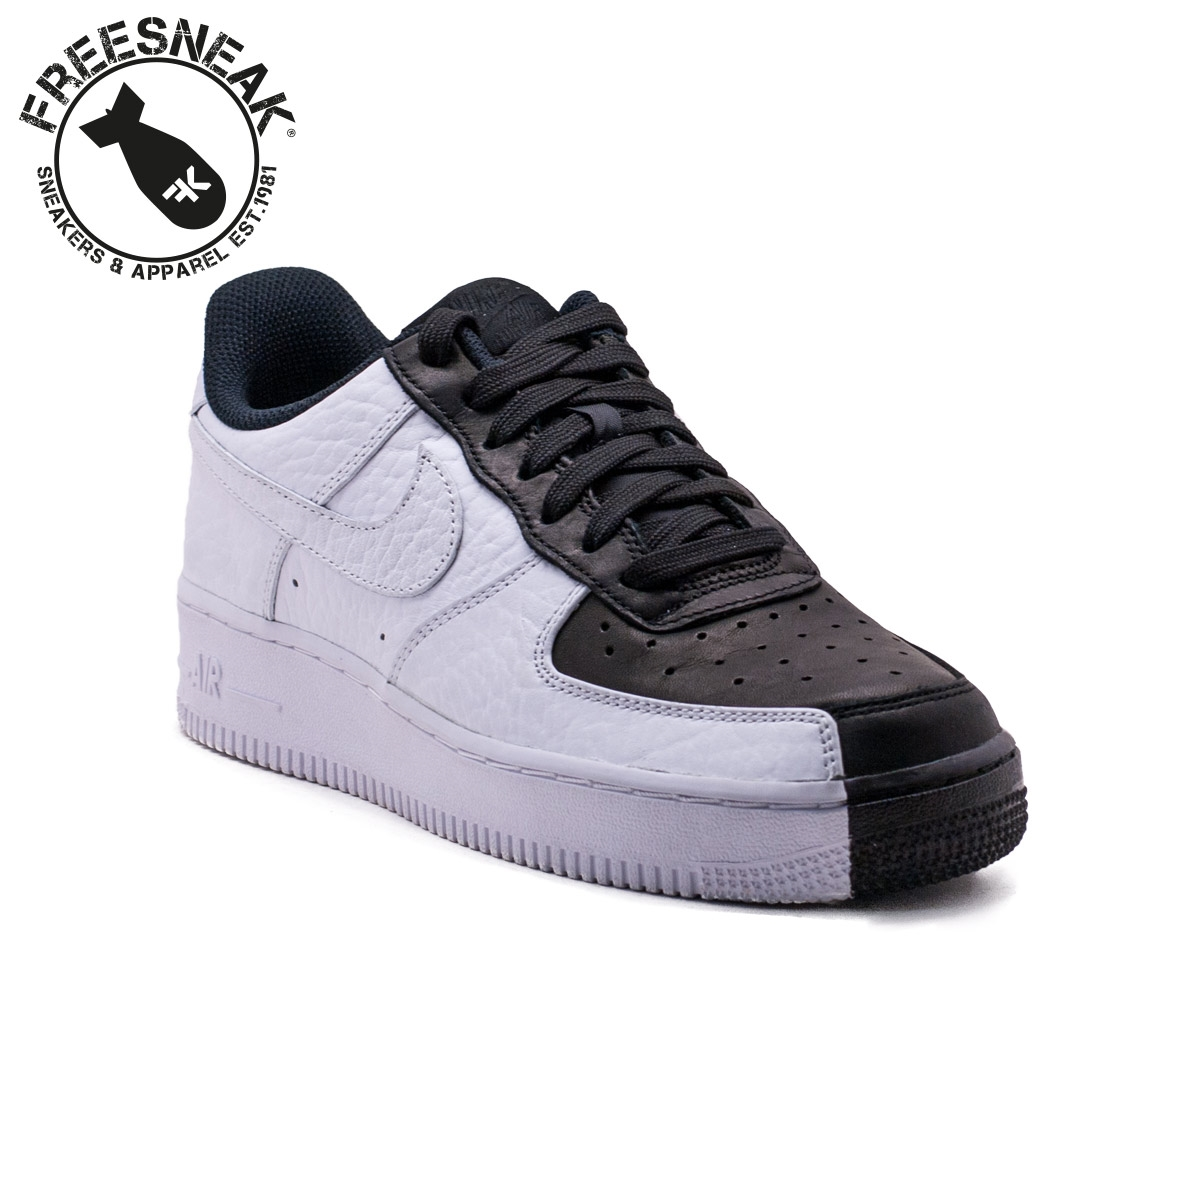 hot sale online 263cd d1cb7 AIR FORCE 1 LOW SPLIT WHITE BLACK 905345-004